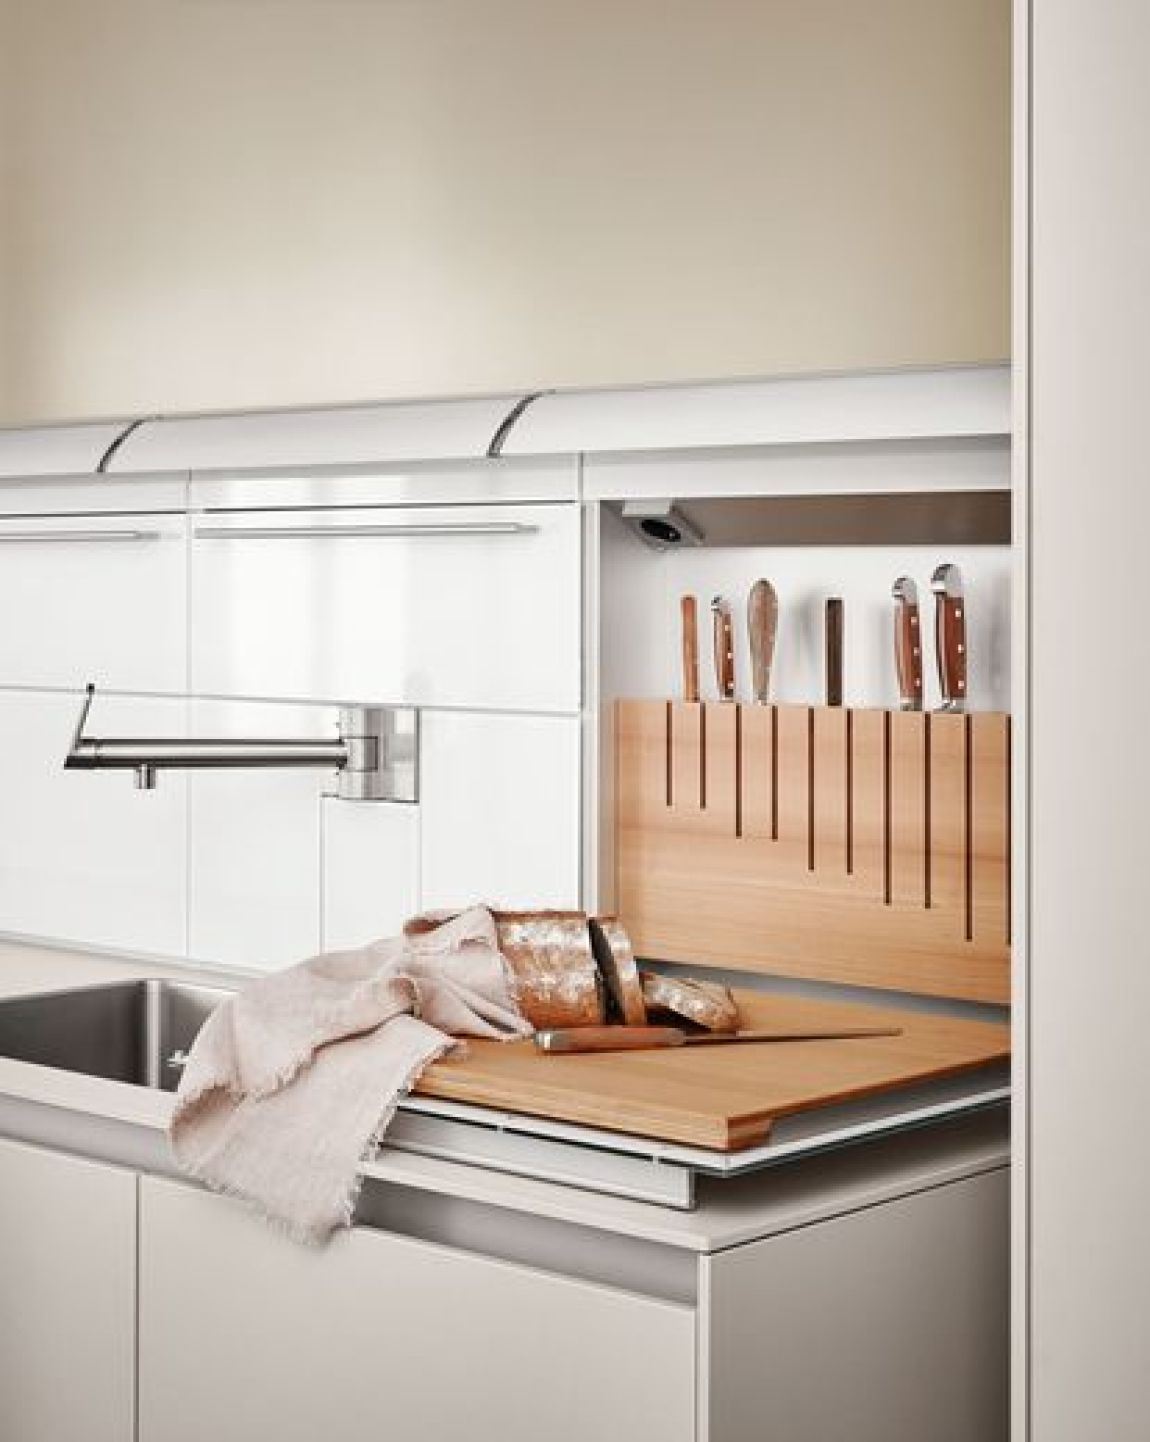 The functional wall of the Bulthaup b3 system allows to hide different functions, such as the water area or a storage of utensils-